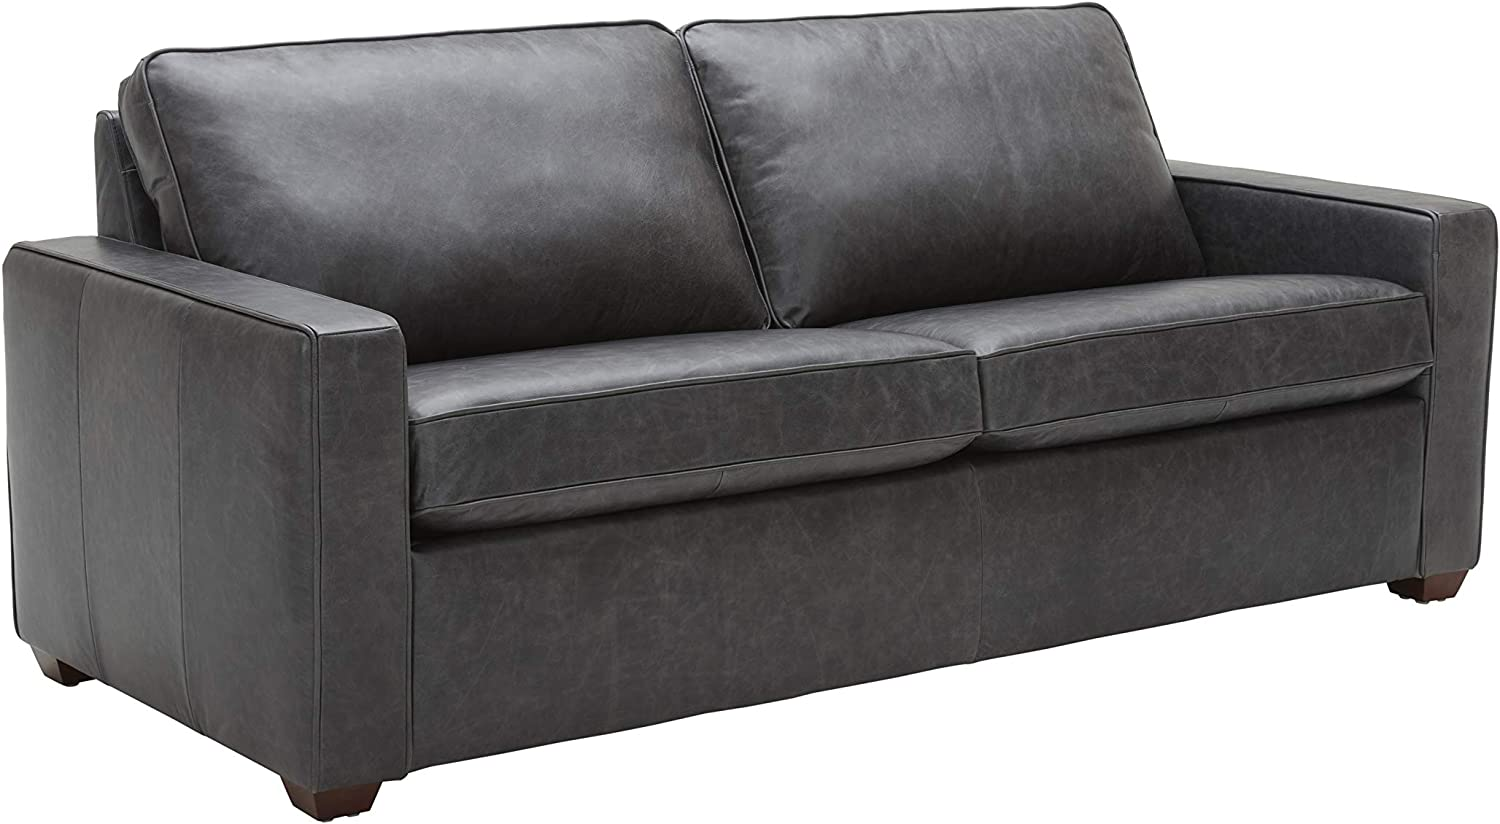 """Rivet Andrews Contemporary Leather Sofa with Removable Cushions, 82""""W, Black"""